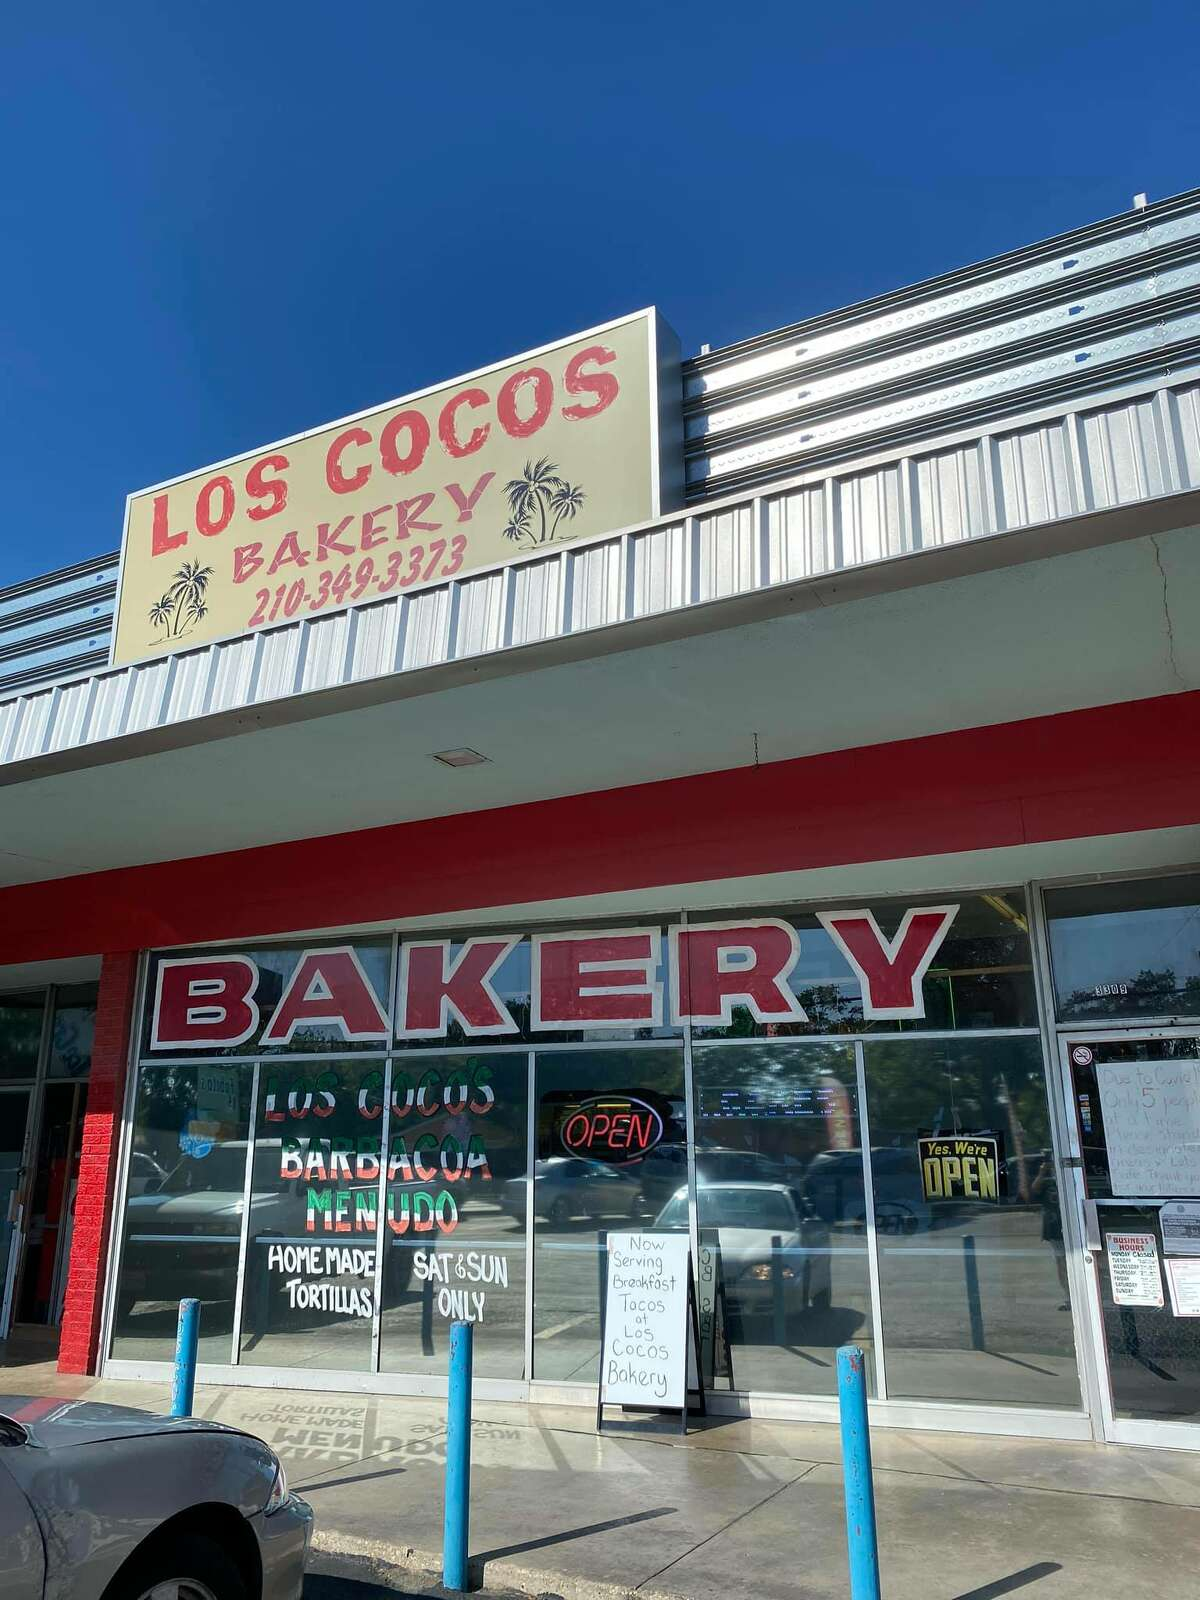 The patriarch of the Torres family opened the sweets shop, mixing European recipes with pan dulce offerings, in August 1973.